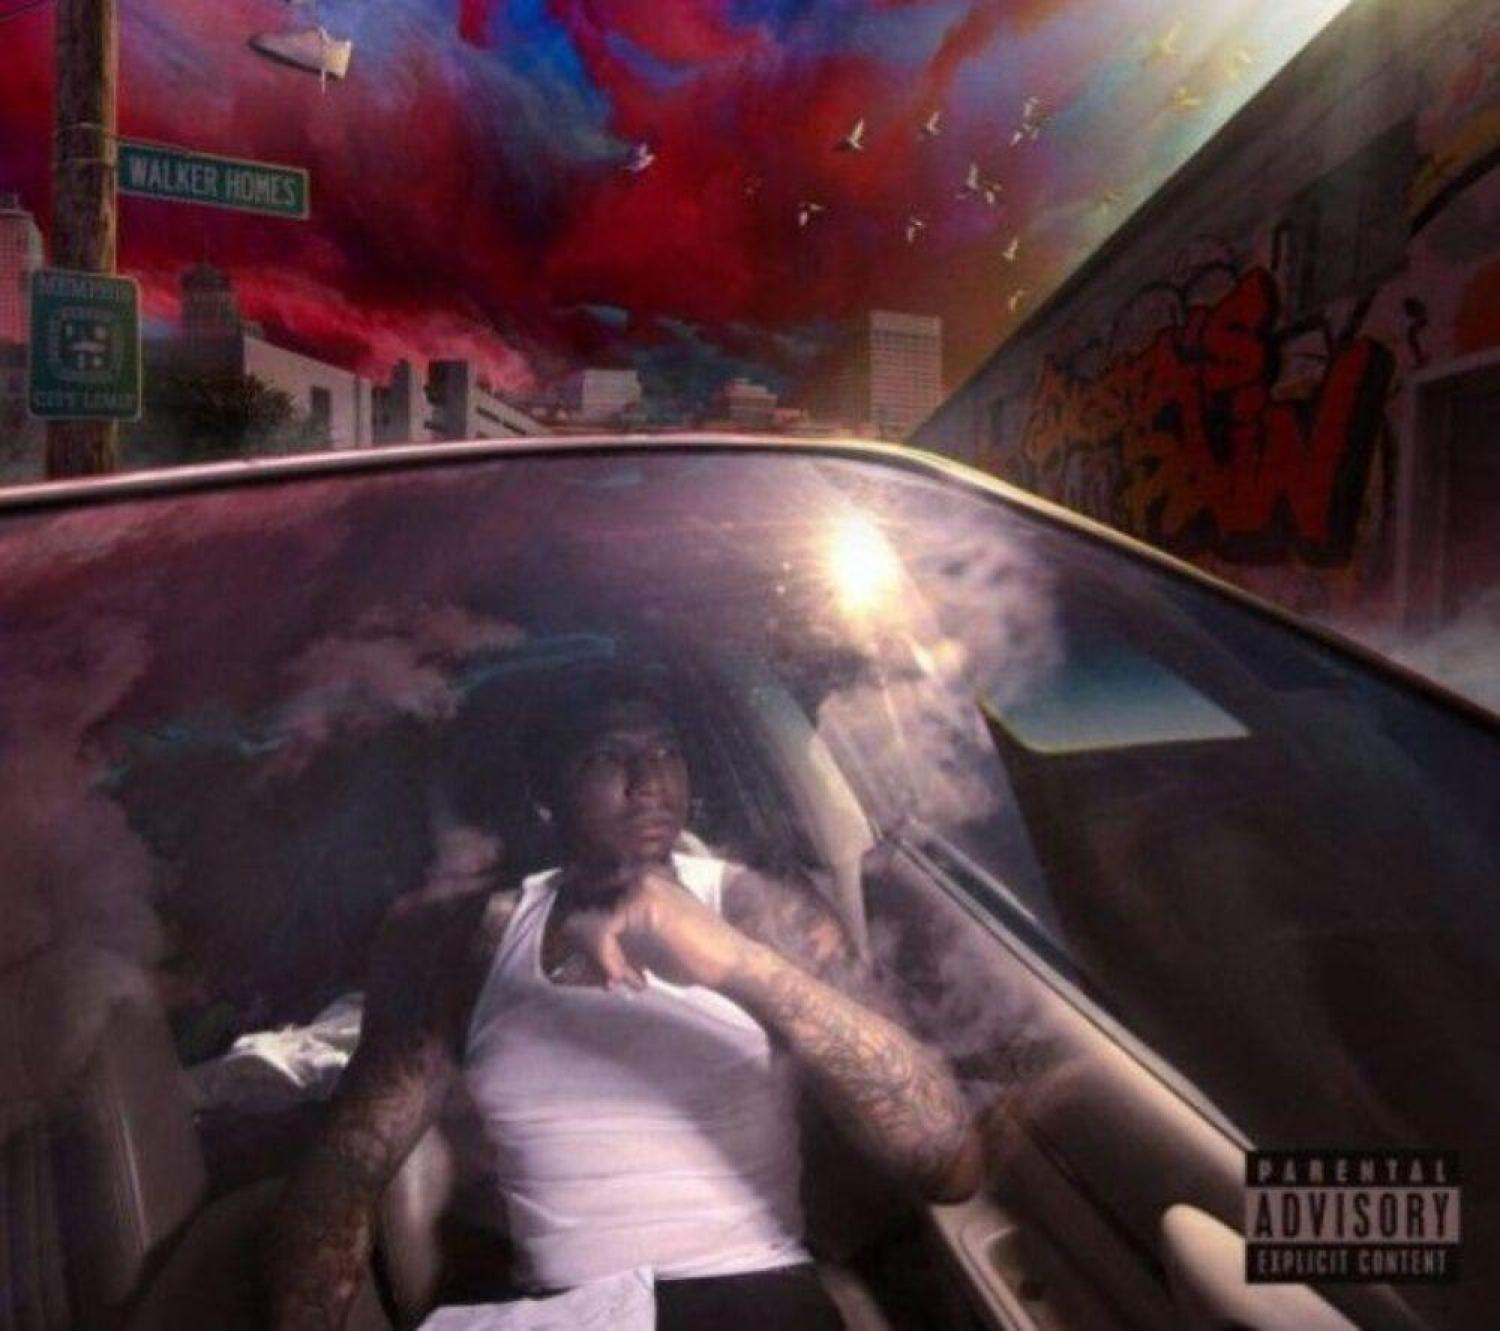 DOWNLOAD MP3: Moneybagg Yo – If Pain Was a Person AUDIO 320kbps